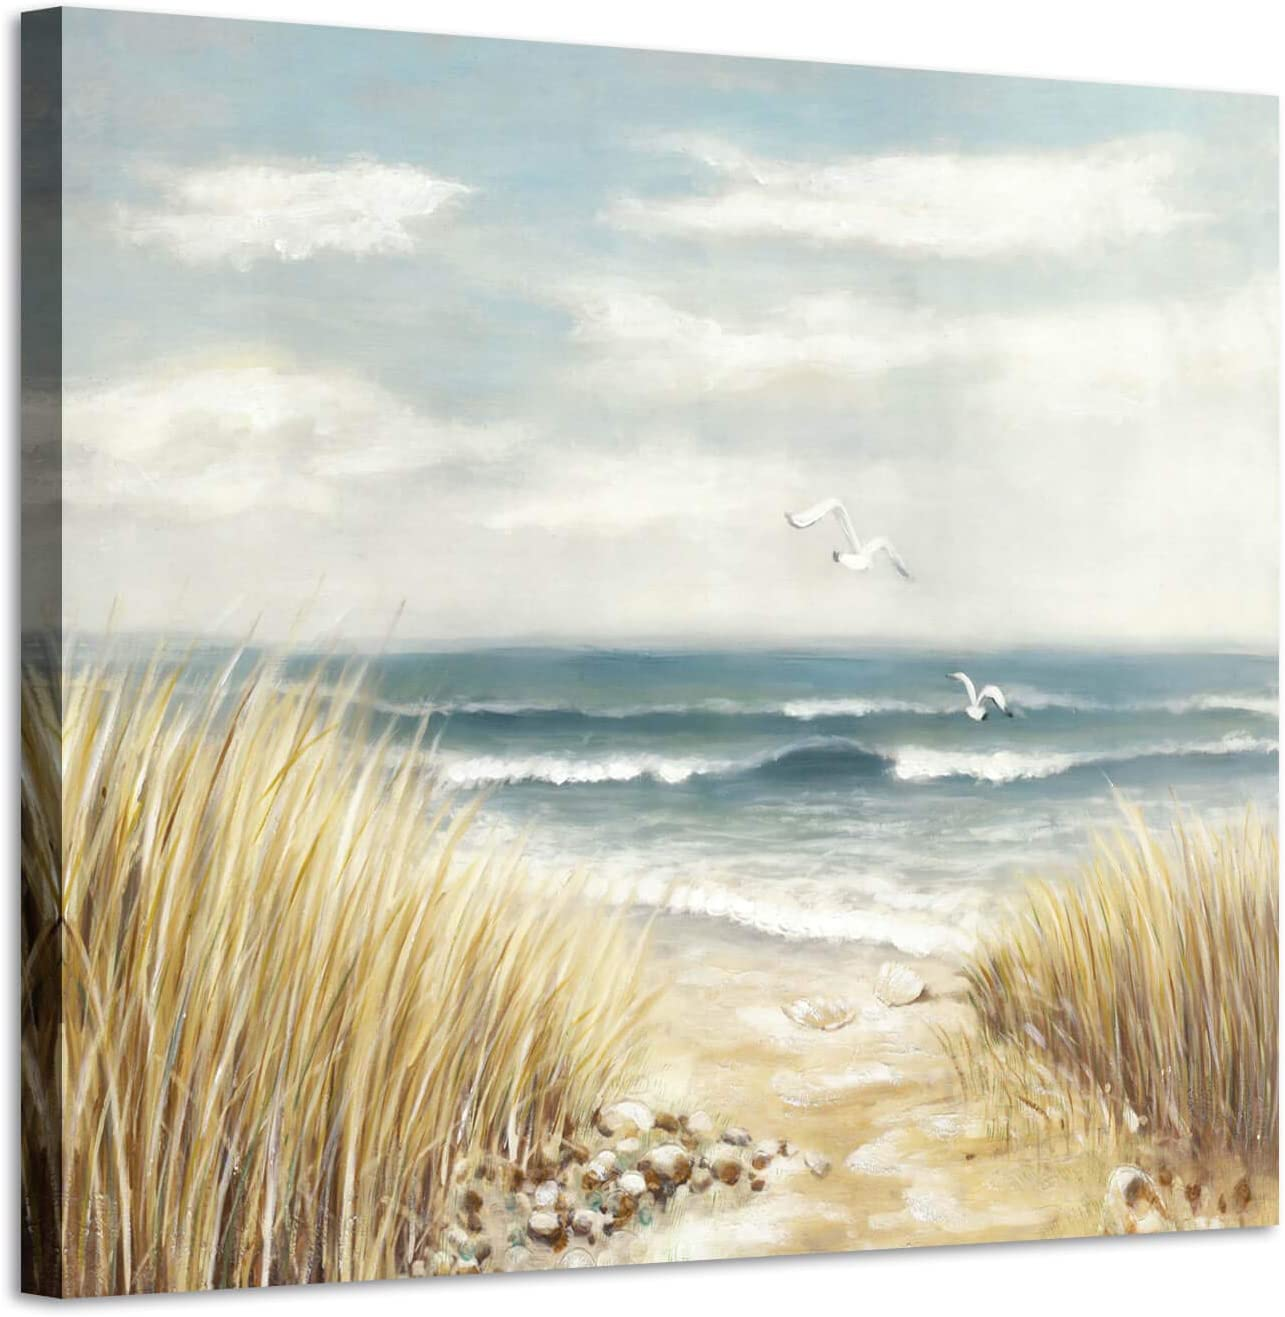 Abstract Beach Painting Wall Art: Seashore Artwork Hand Painted Coastal Picture on Canvas for Office (16